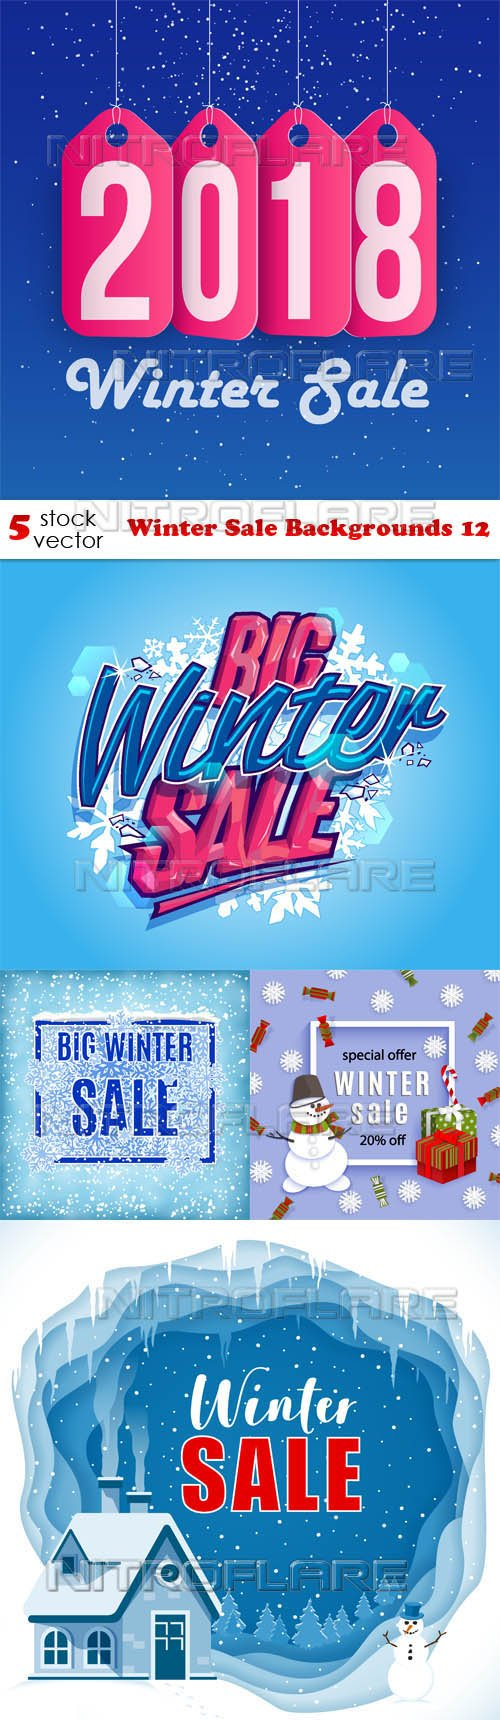 Vectors - Winter Sale Backgrounds 12